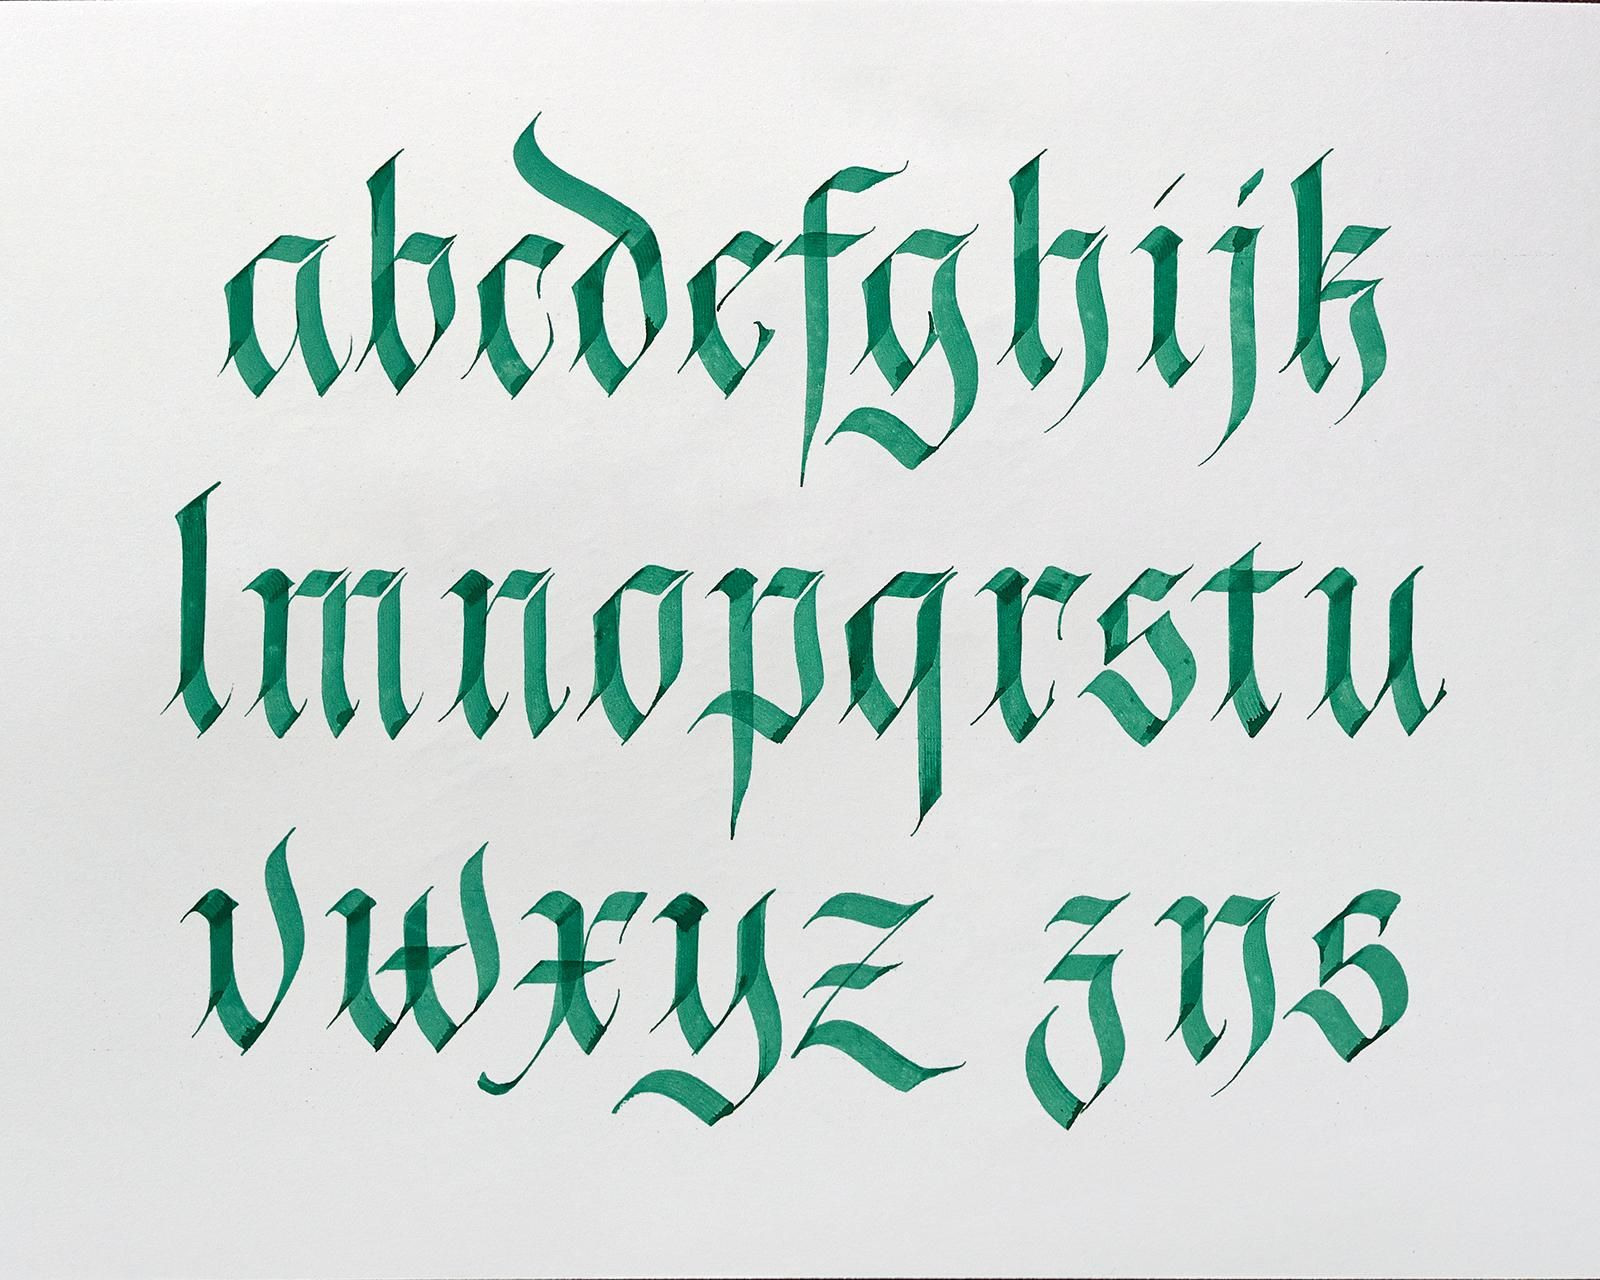 Pin by Peter Miller on Calligraphy Gothicesque in 2020